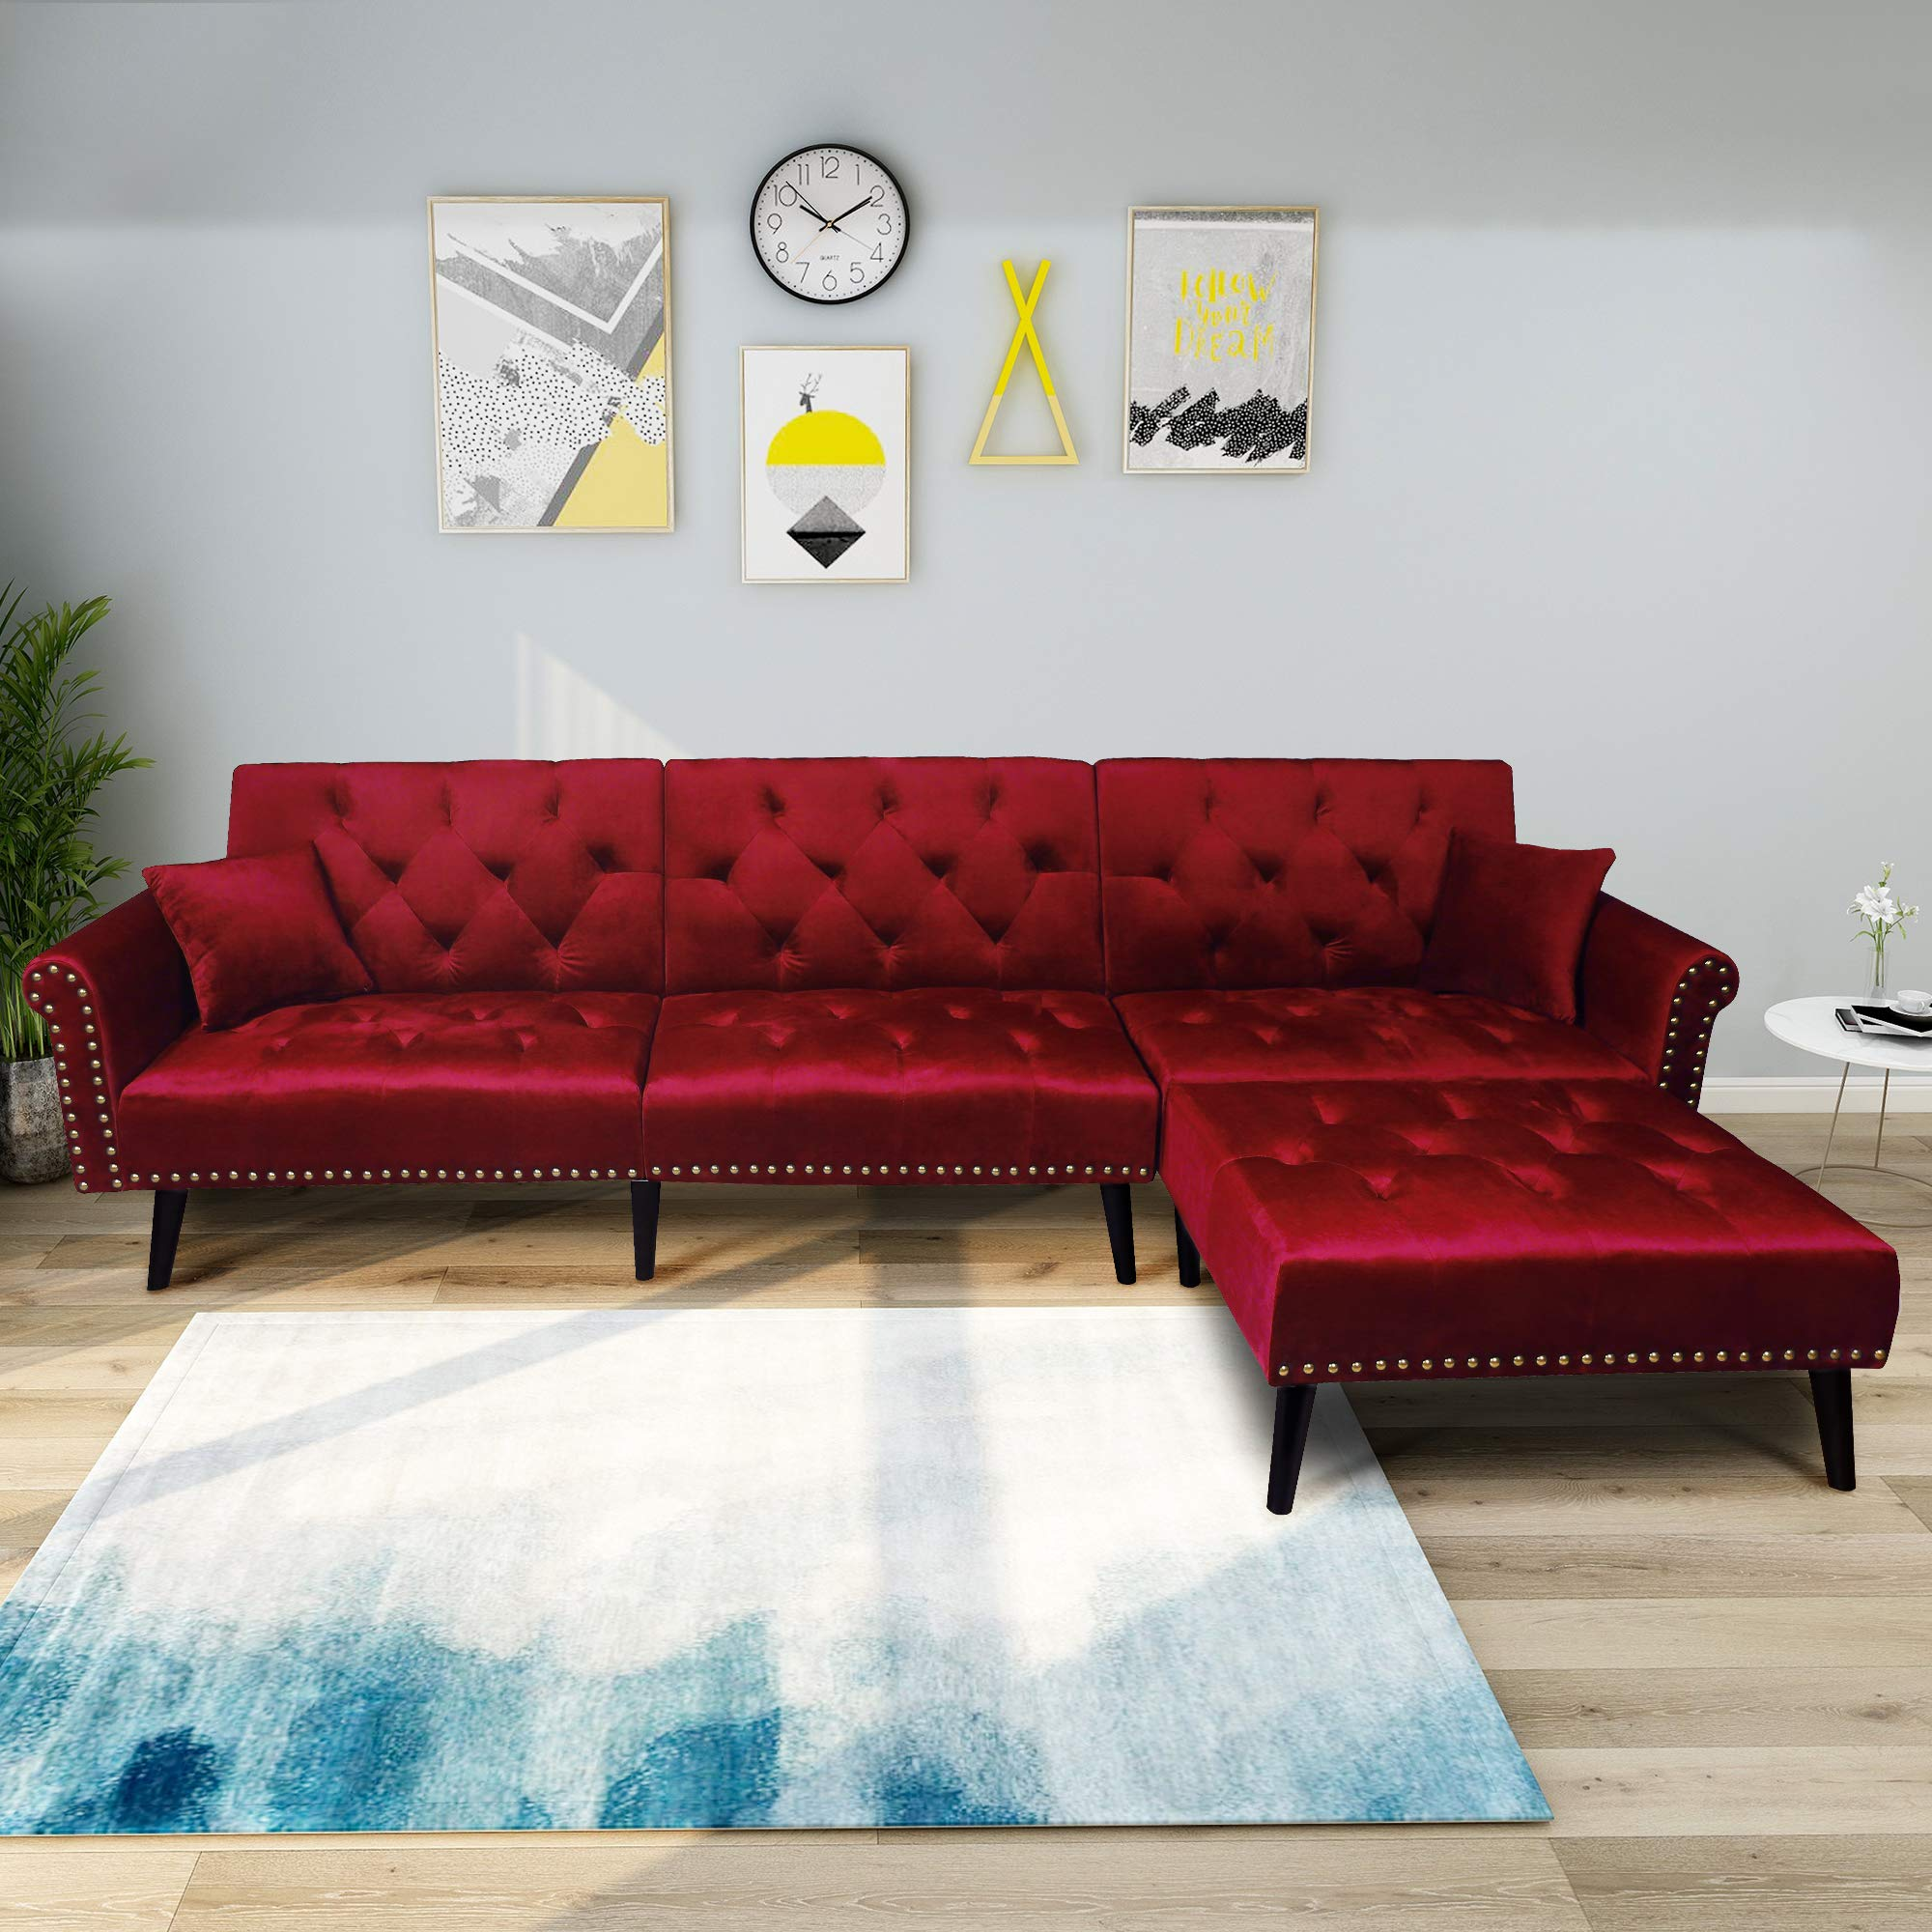 BEIZ TRADING Sectional Modern Contemporary Sofa Corner Sofa Living Room Couch Sofa with Reversible Chaise Lounge Soft Dutch Velvet for Top Comfort Home Furniture (Wine Red, 115'' 59.37'' 32.3'') by BEIZ TRADING